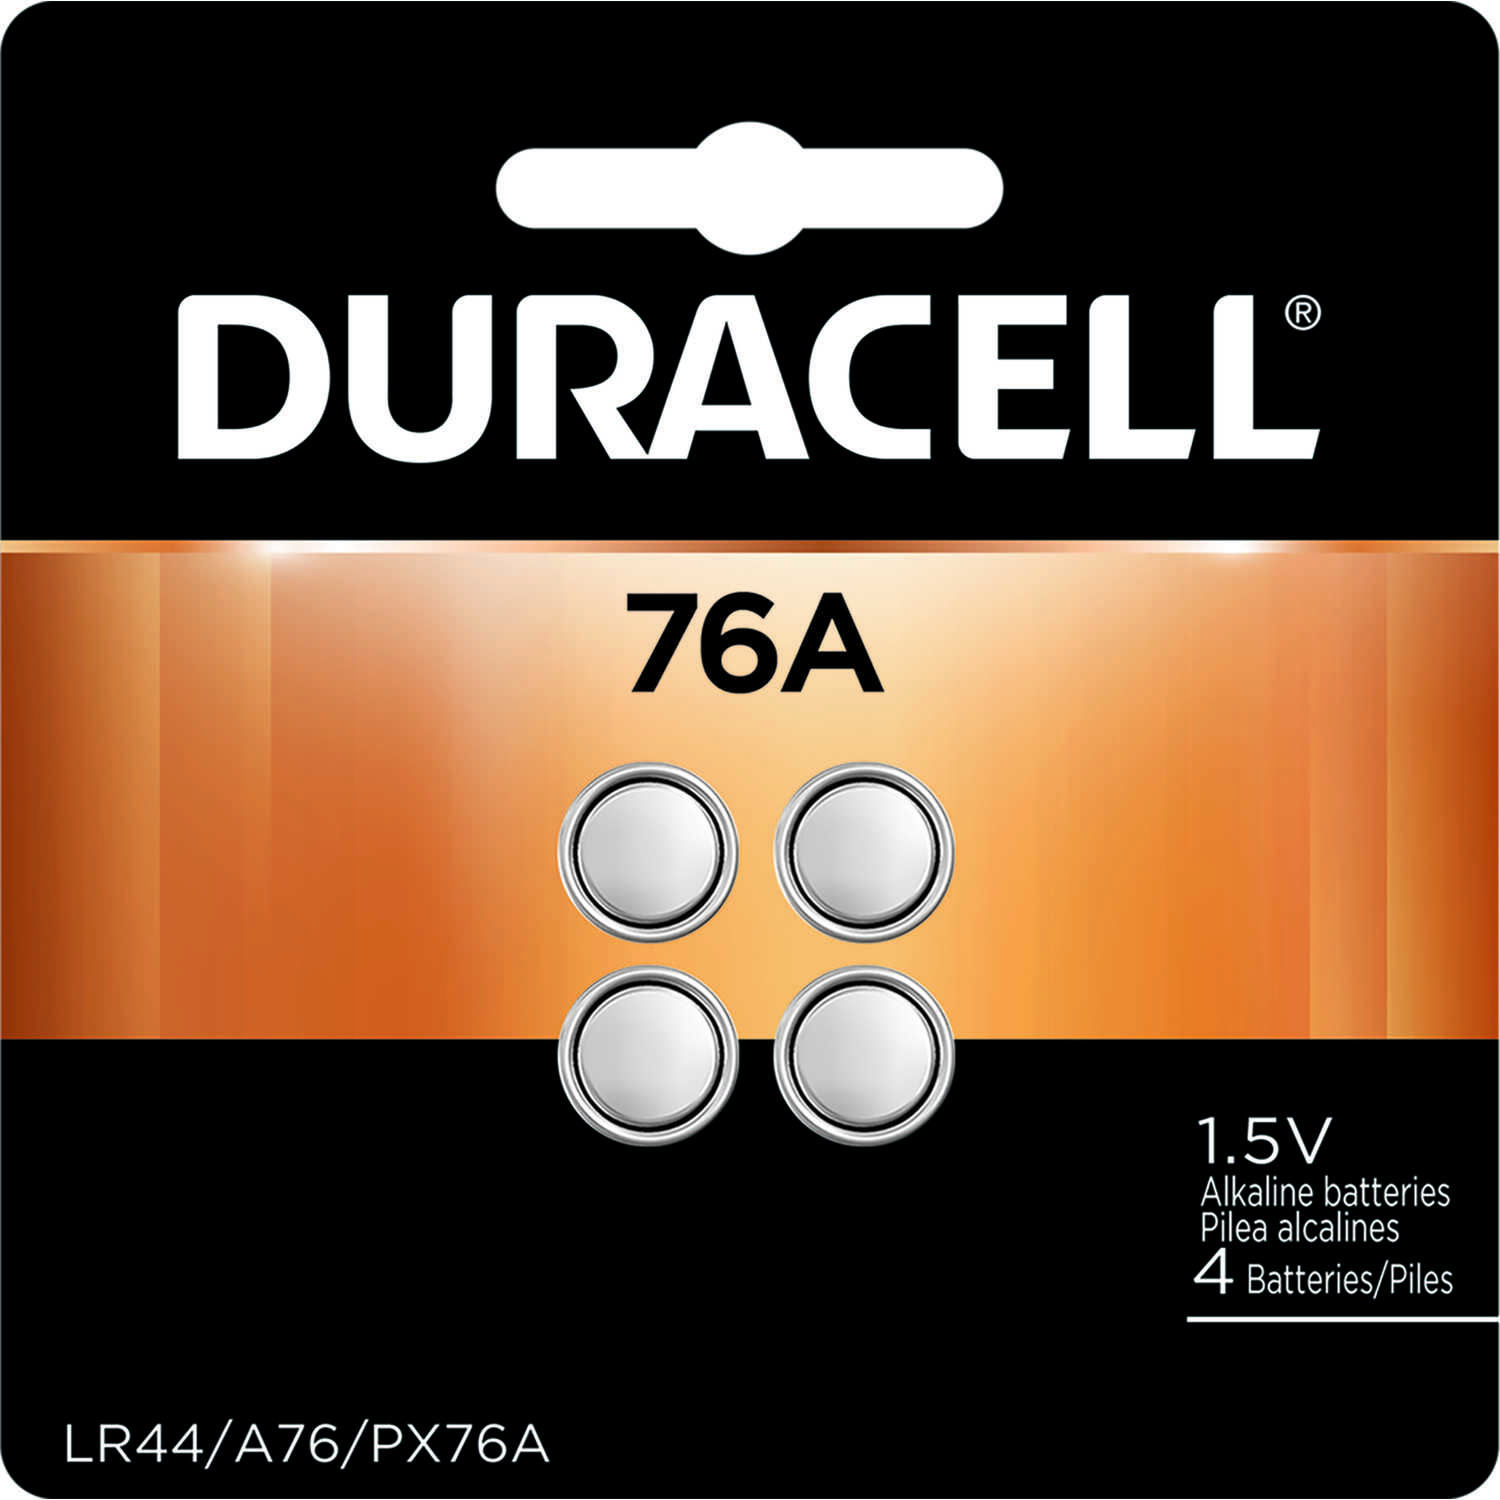 Duracell  76A  1.5 volt Alkaline  4 pk Medical Battery